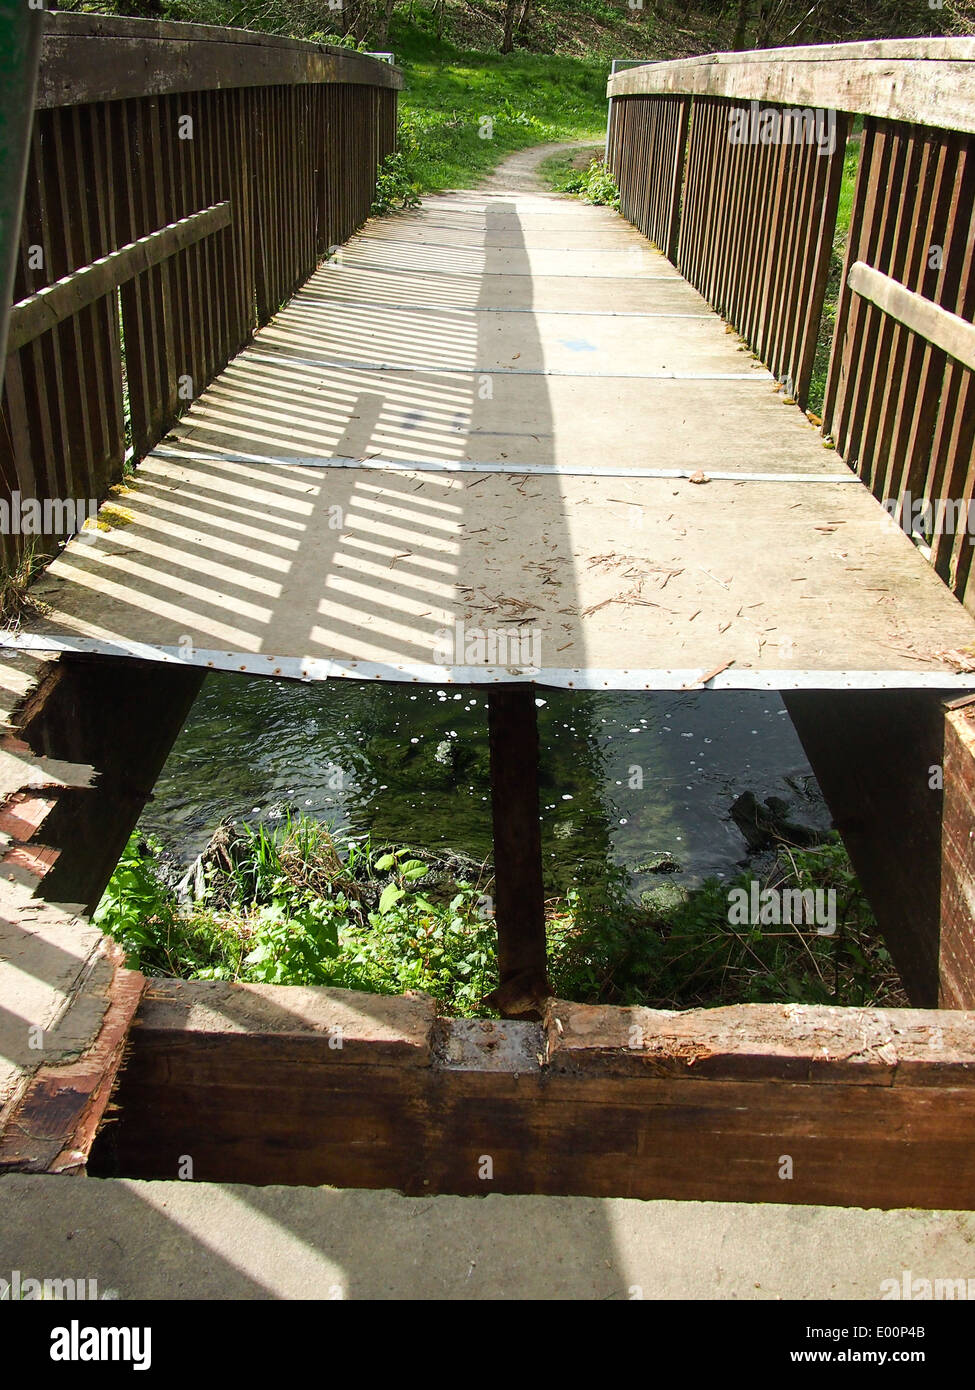 a-wooden-bridge-over-the-river-irk-in-manchester-with-boarding-missing-E00P4B.jpg